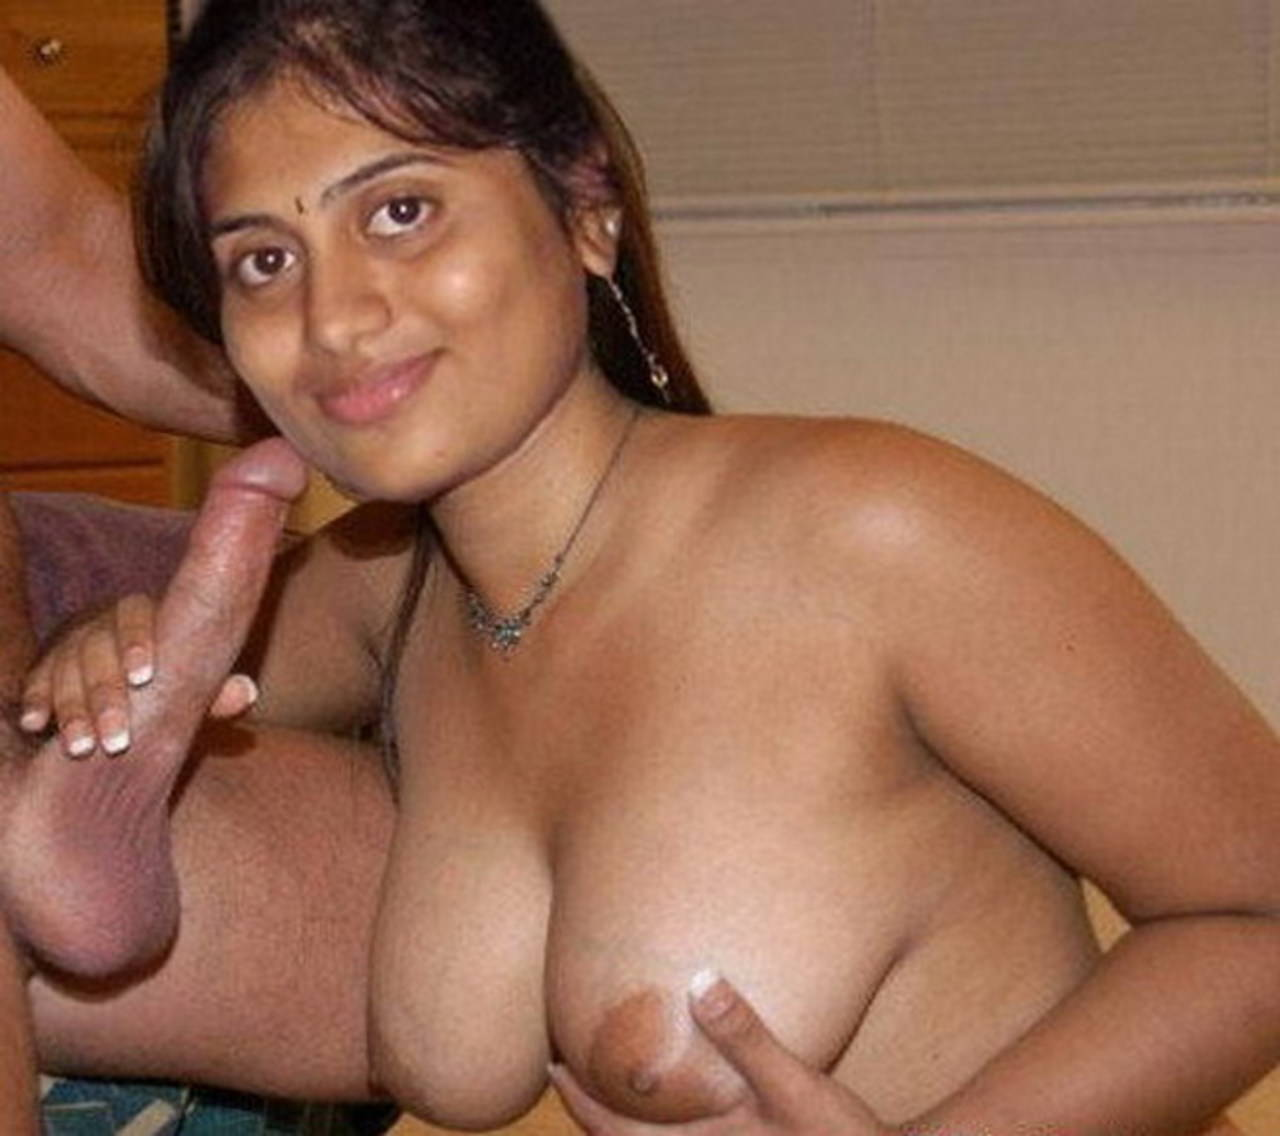 Desi nude girl photo download fucks thumbs